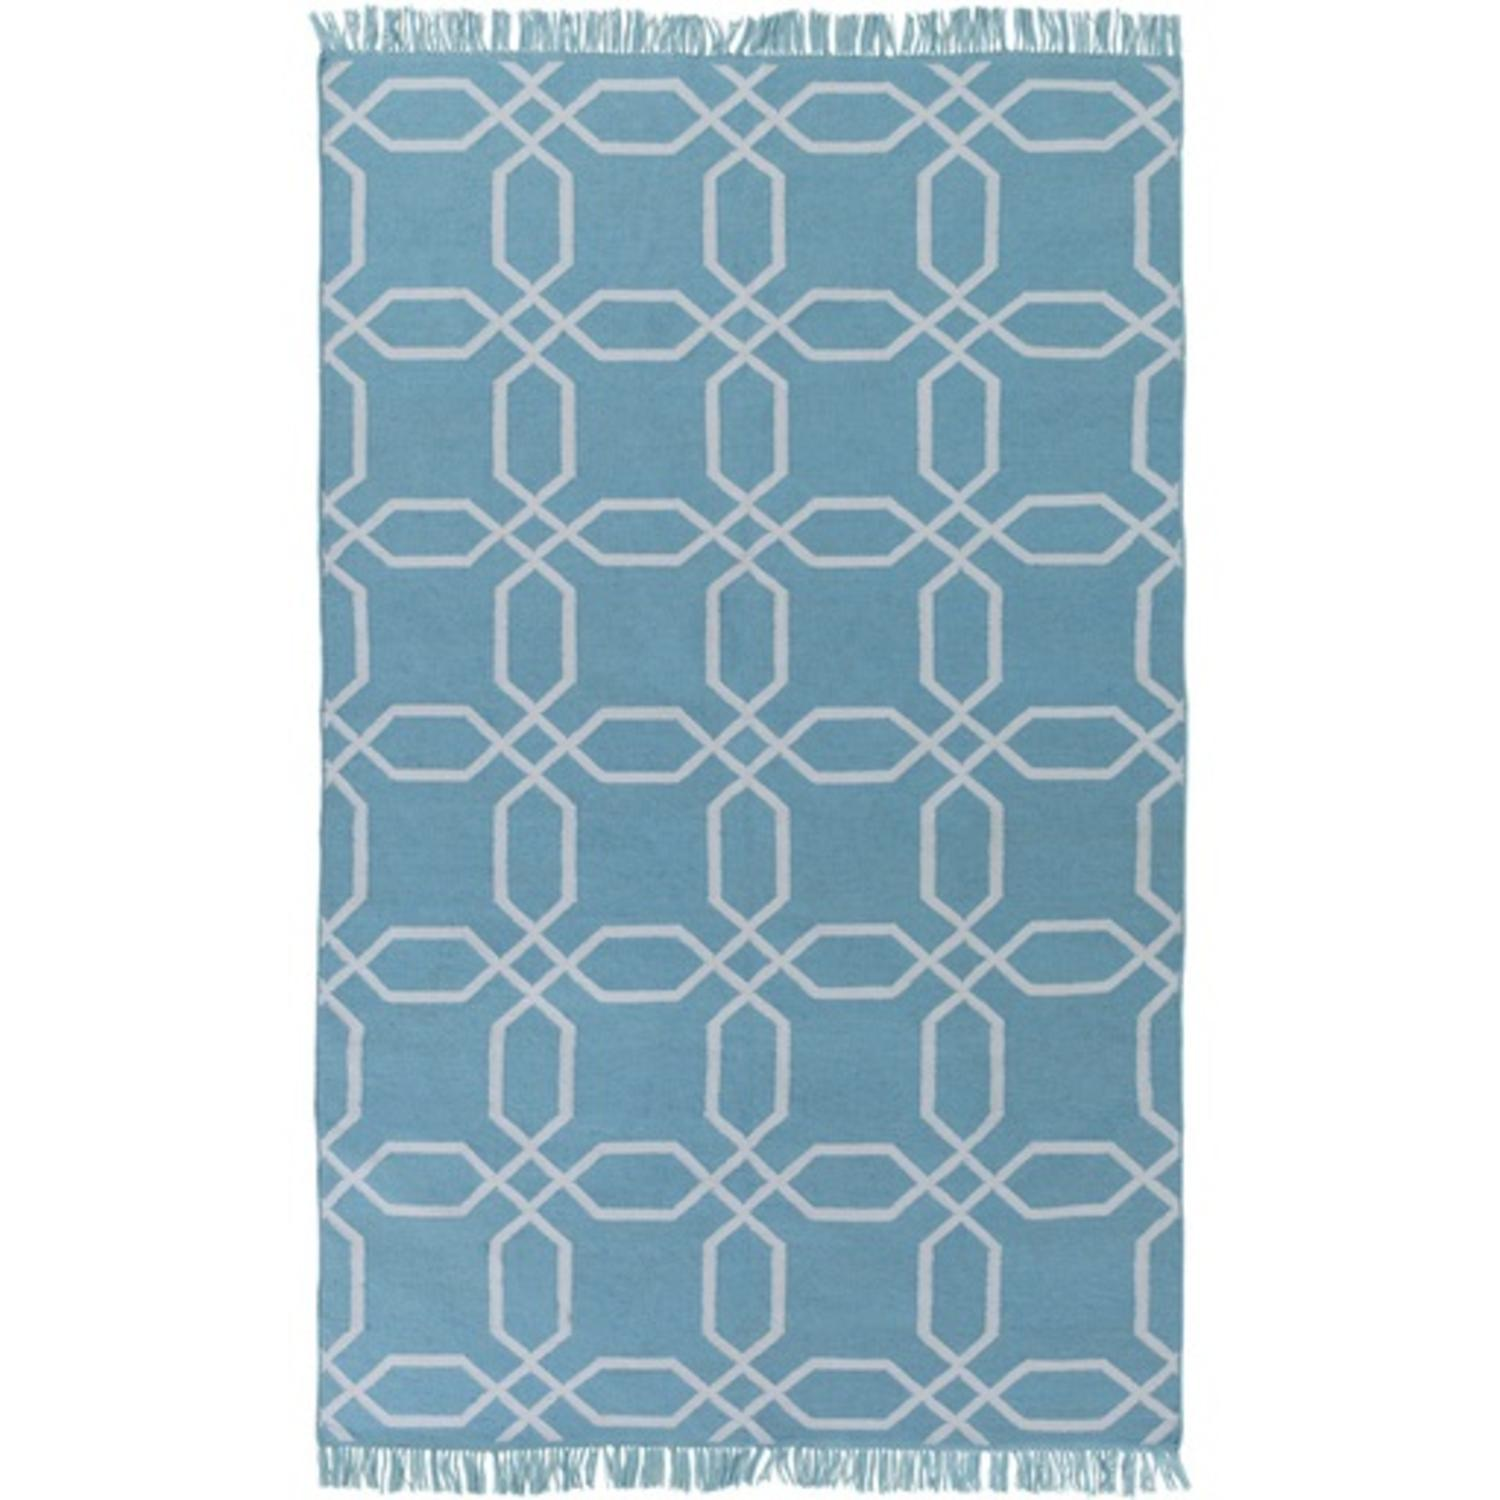 3.6' x 5.6' Octagon Lagoon Light Blue and Ivory Reversible Shed-Free Area Throw Rug